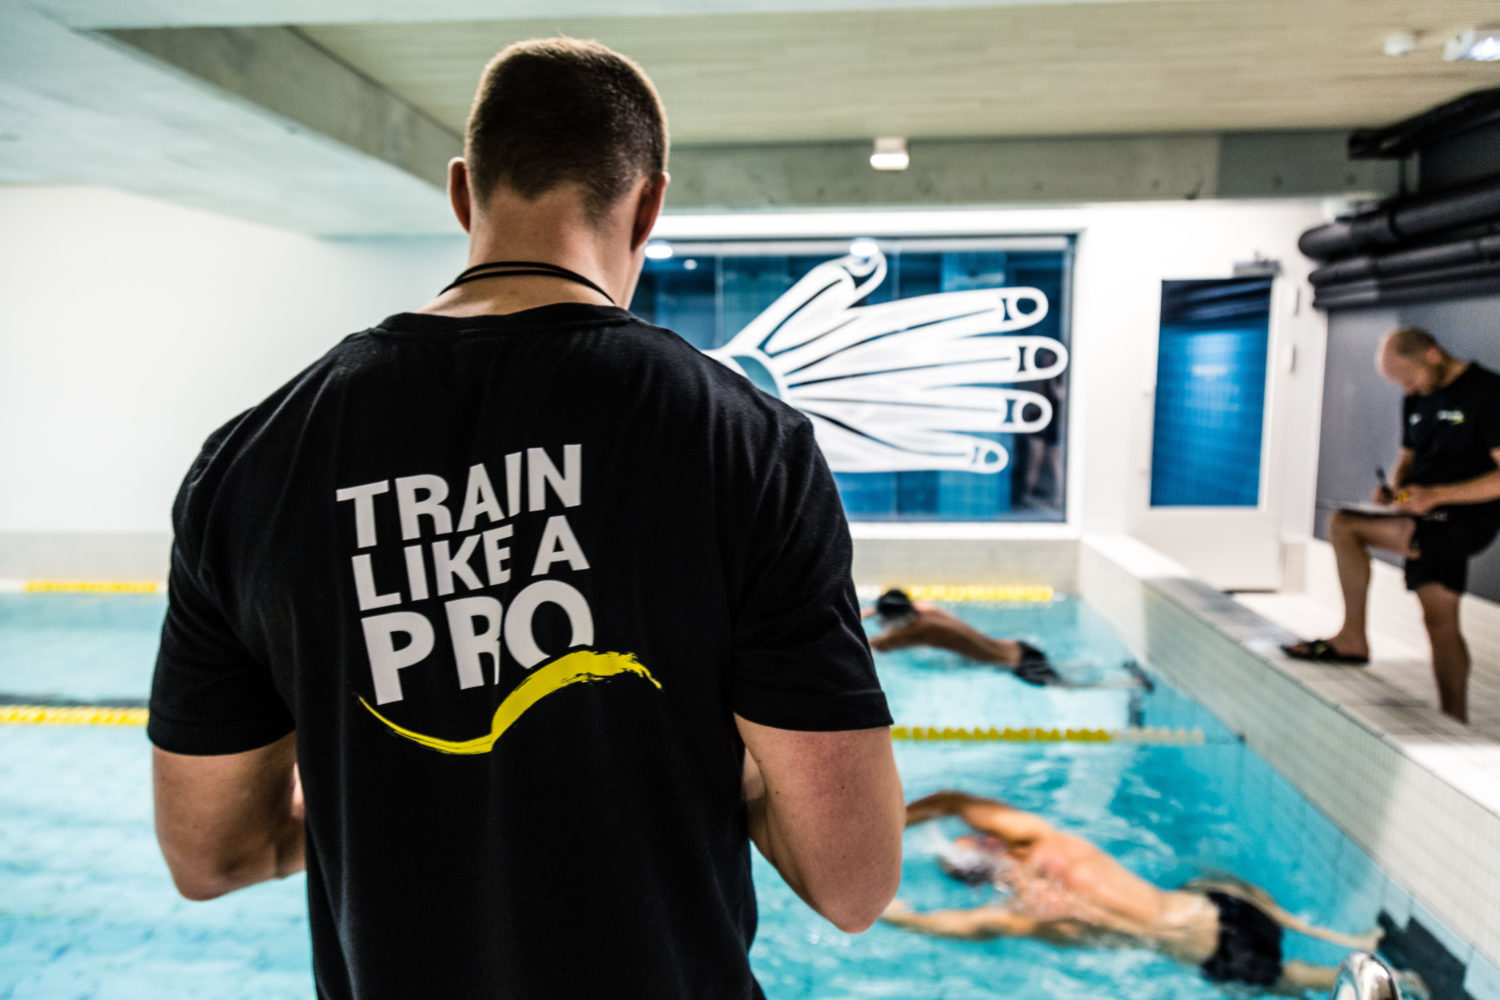 SwimGym Camps en Training Day. Train onder begeleiding van professionele zwemcoaches. Verbeter je borstcrawl en je zwemtechniek. Train Like A Pro.